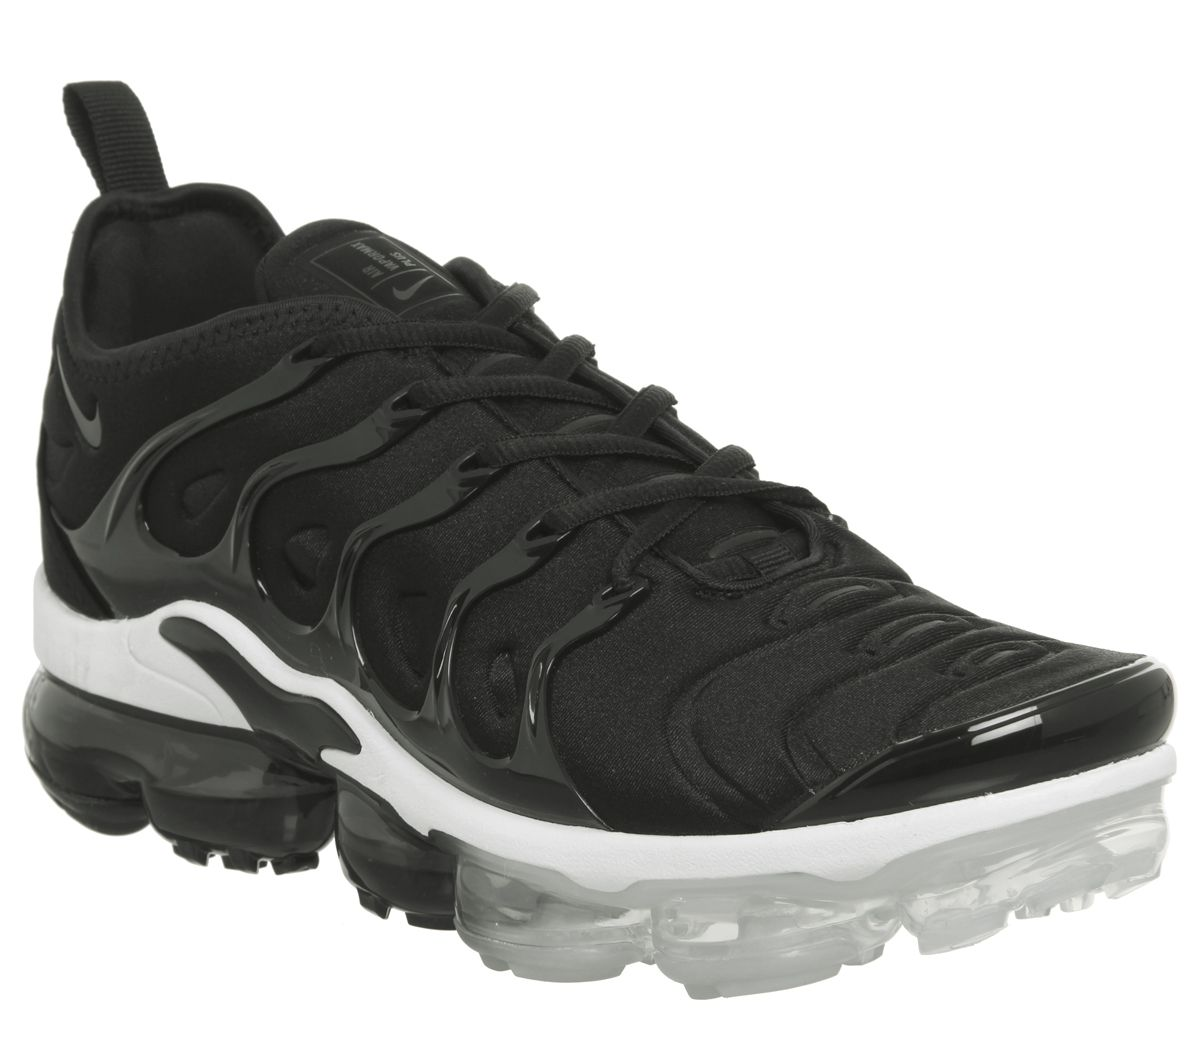 c9a7af0cd072 Nike Air Vapormax Plus Trainers Black White - His trainers